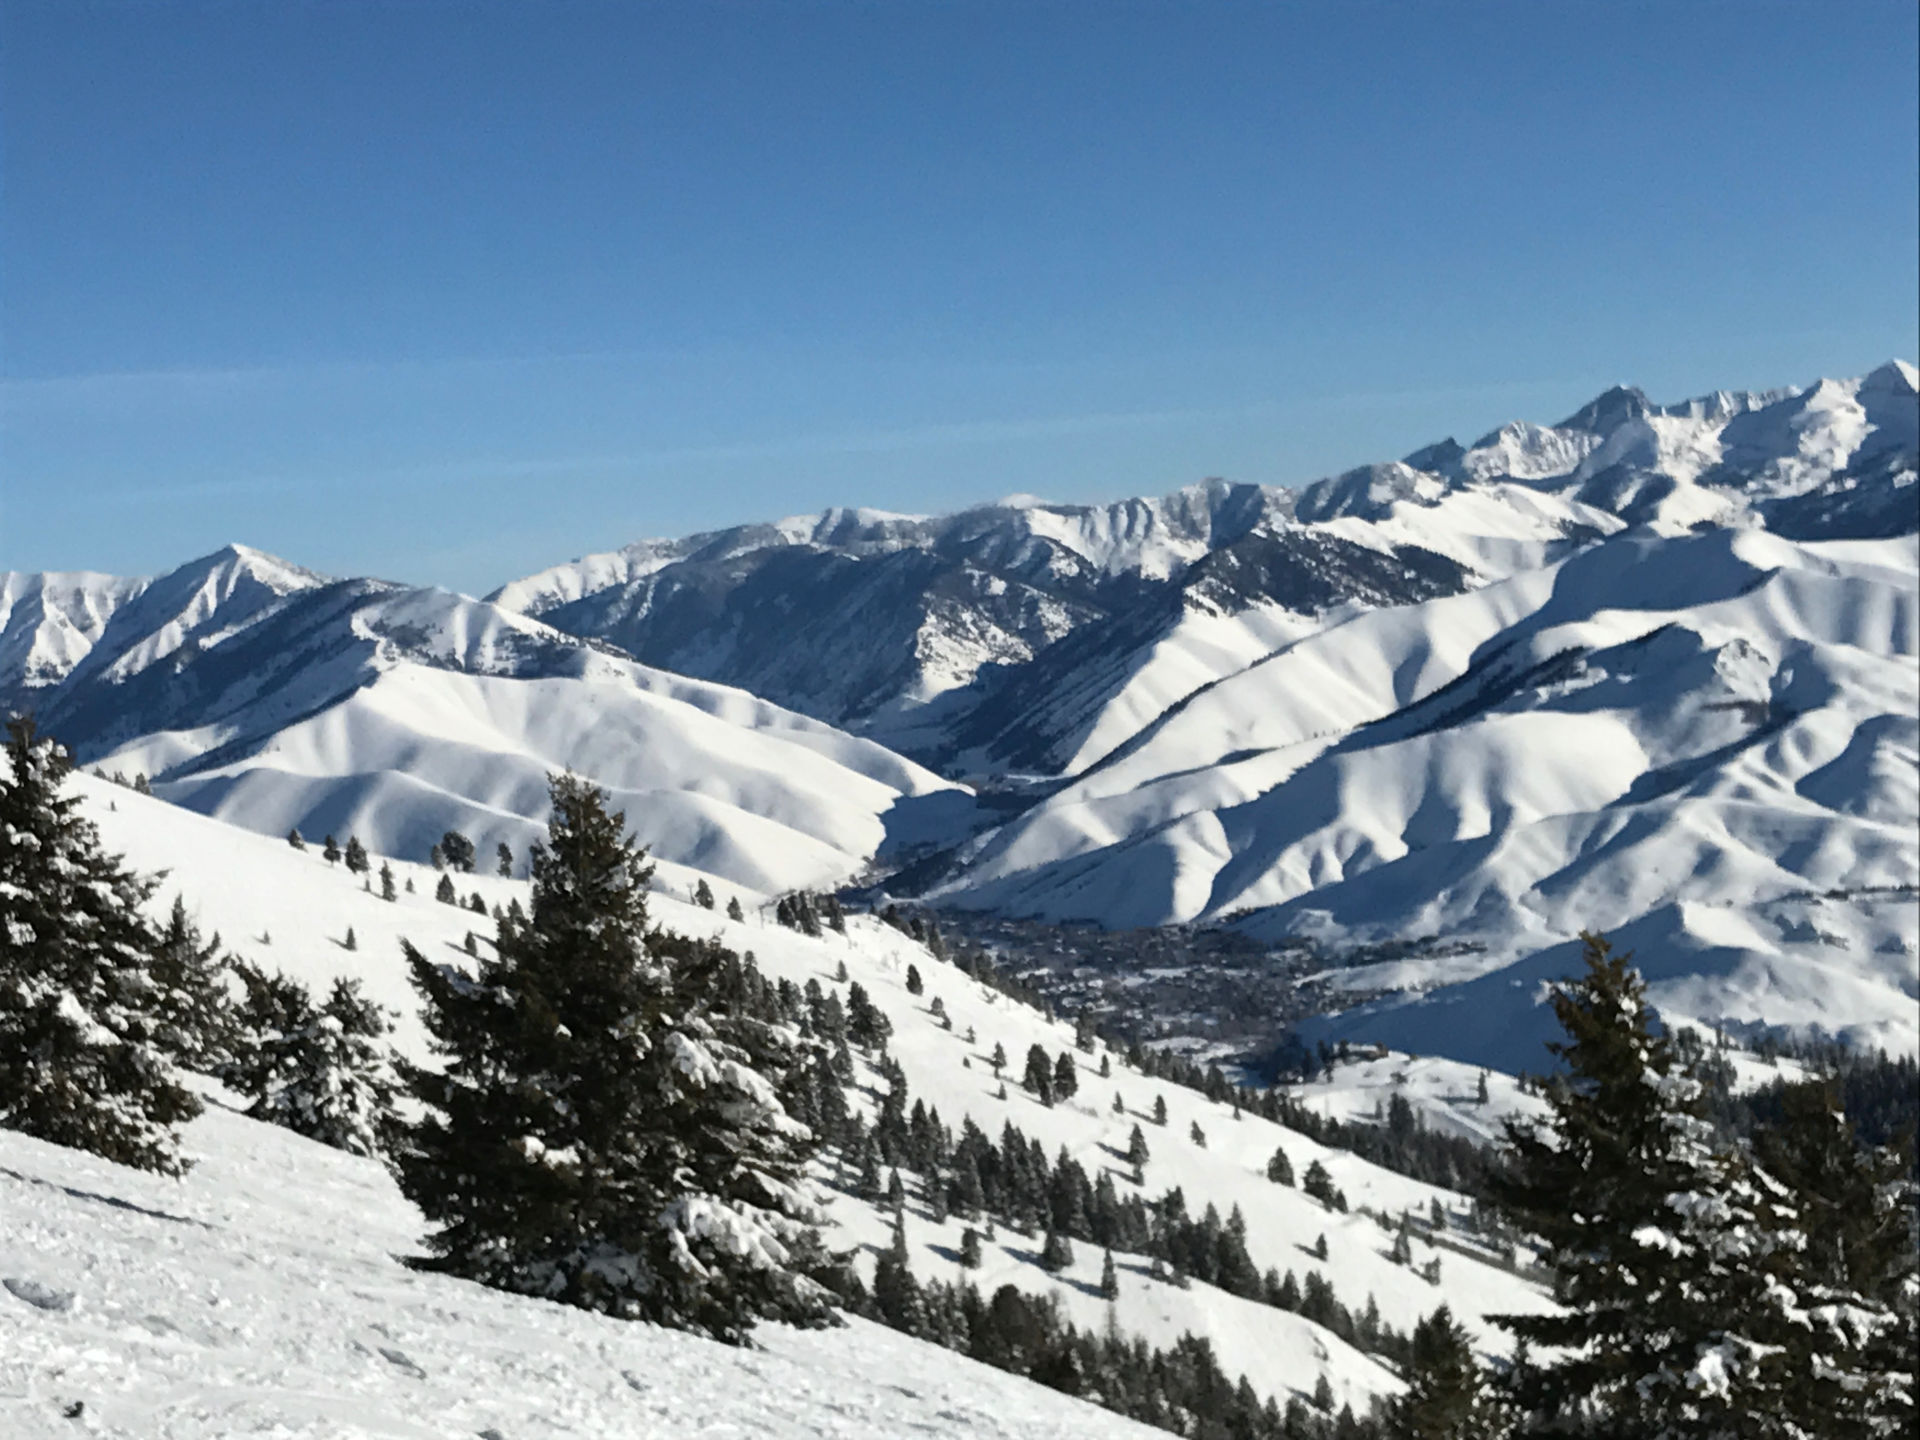 Bring Your Season Pass to Sun Valley and Have Some Fun!